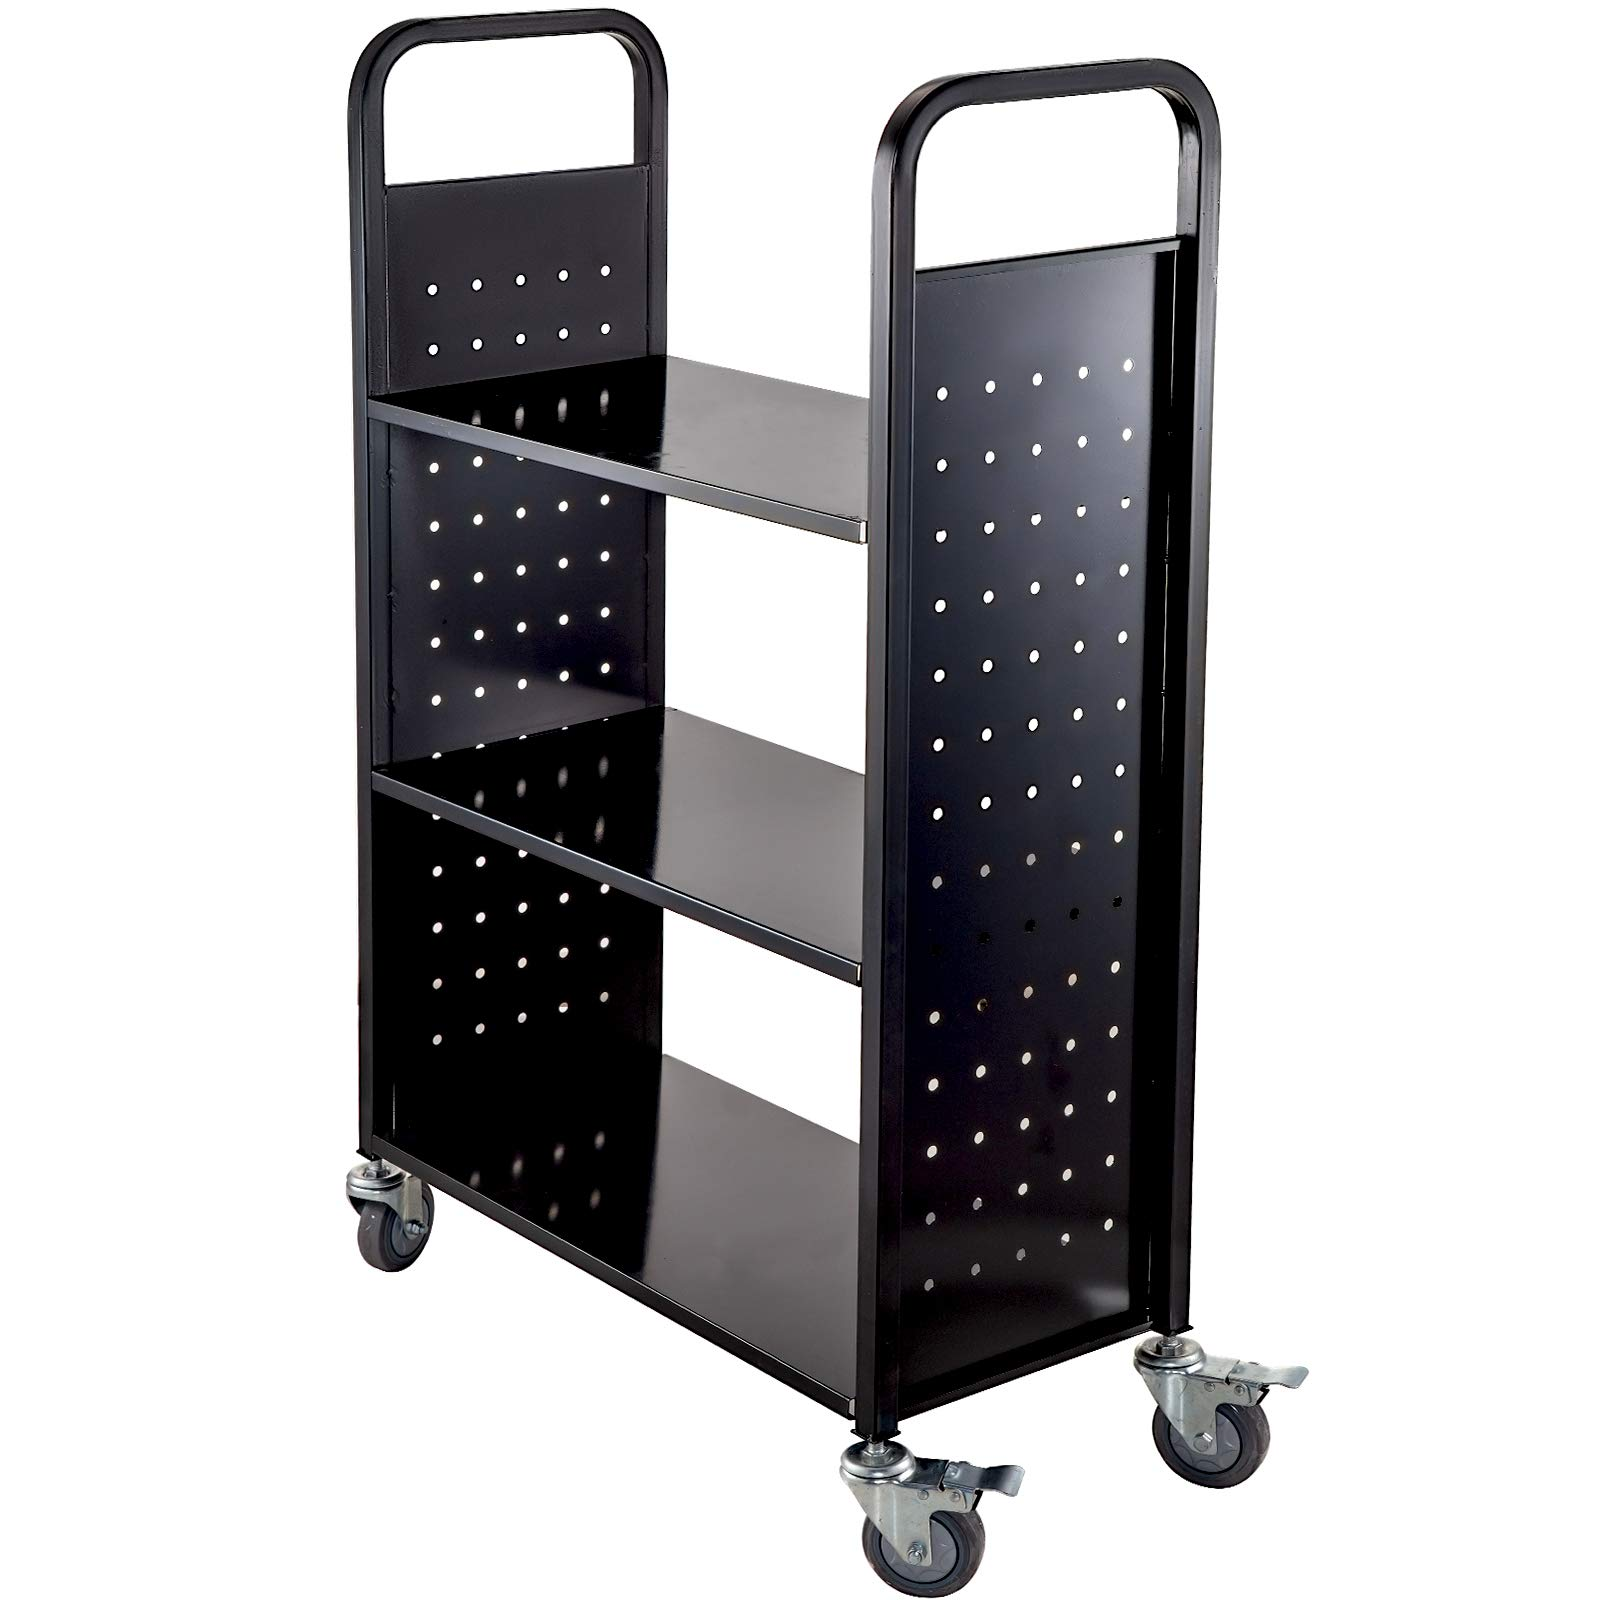 BestEquip Book Cart 200lbs Library Cart 30x14x45 Inch Rolling Book Cart with Large Flat Shelves and 4 Inch Lockable Wheels Welded Steel for Home Shelves Office and School Book Truck in Black by BestEquip